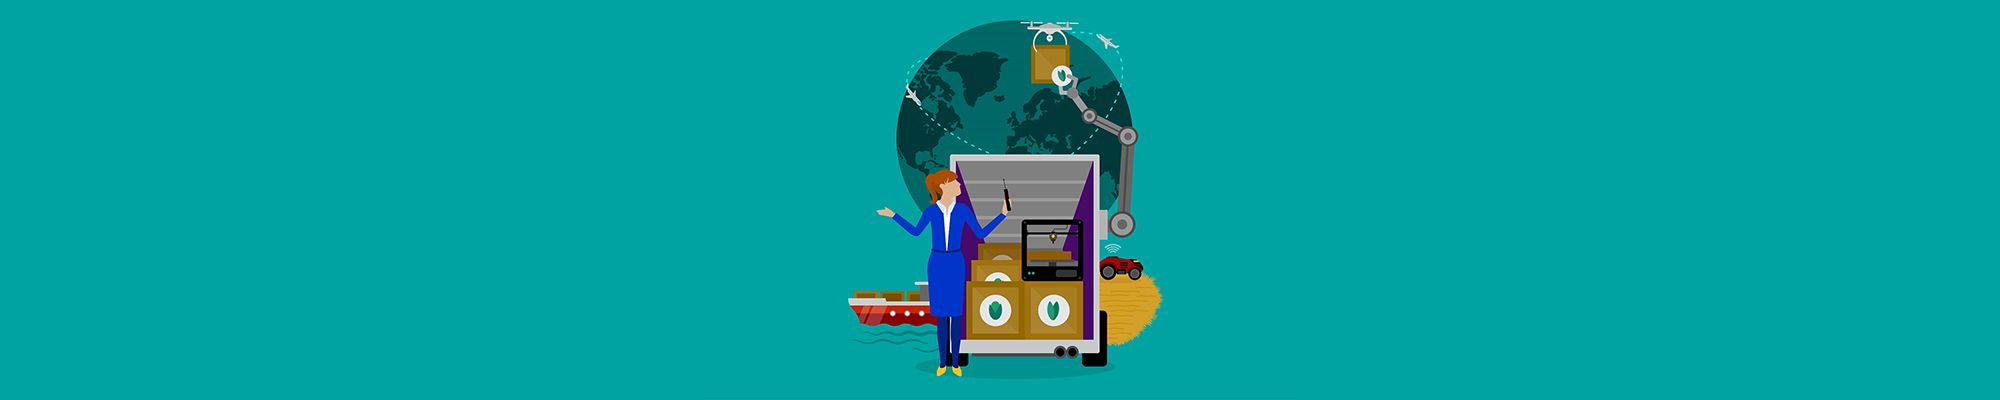 Image of warehouse manager standing in front of delivery vehicles, robots, boats and wifi enabled farm machines, with the globe in the background